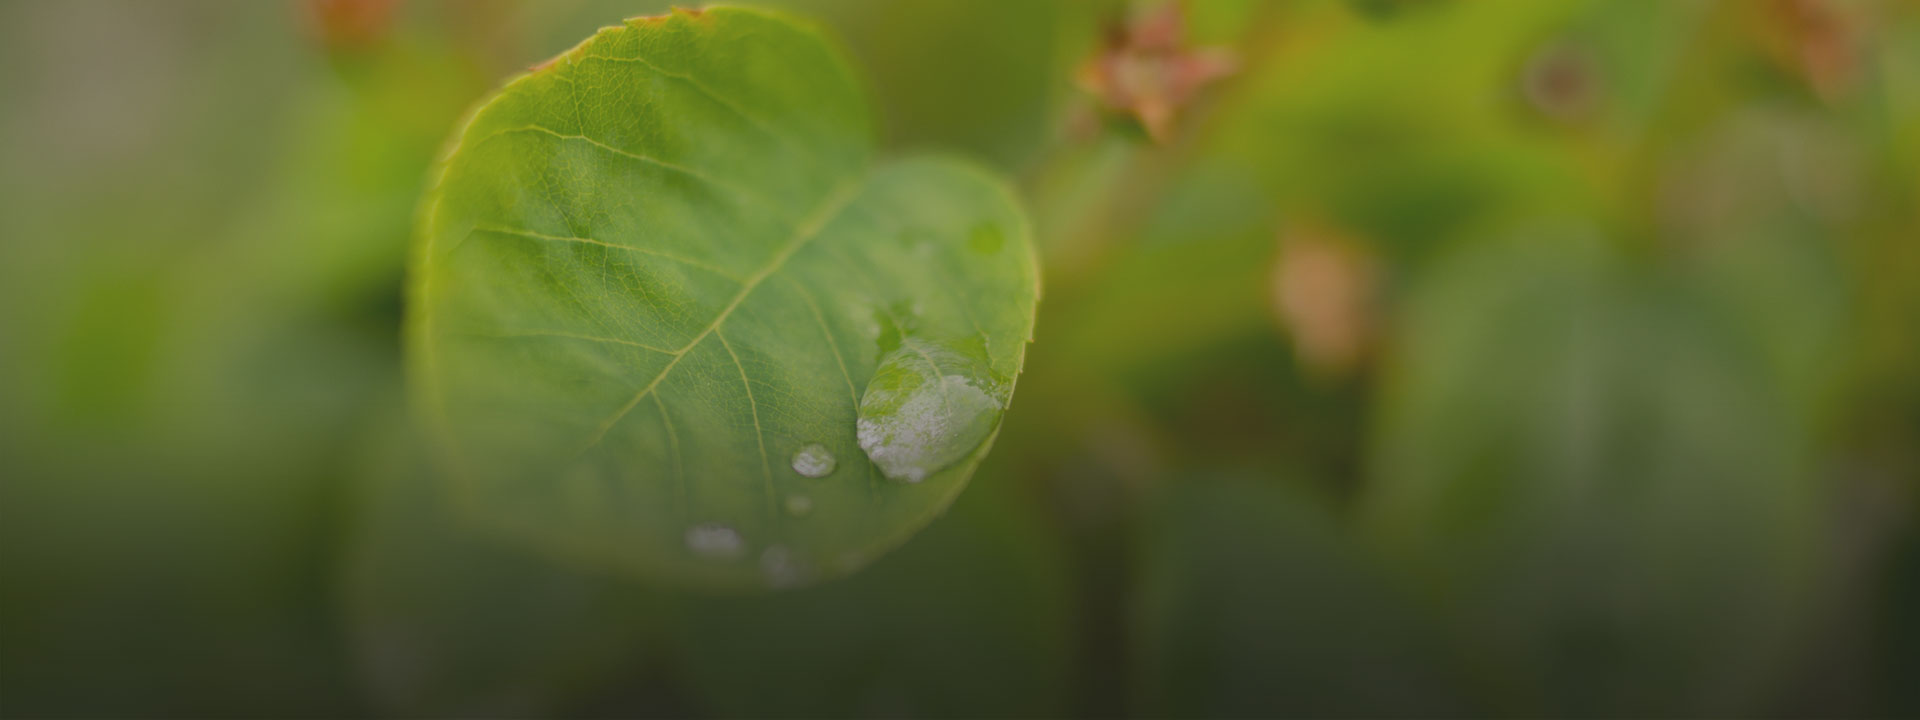 Leaf, learn how we support environmental sustainability